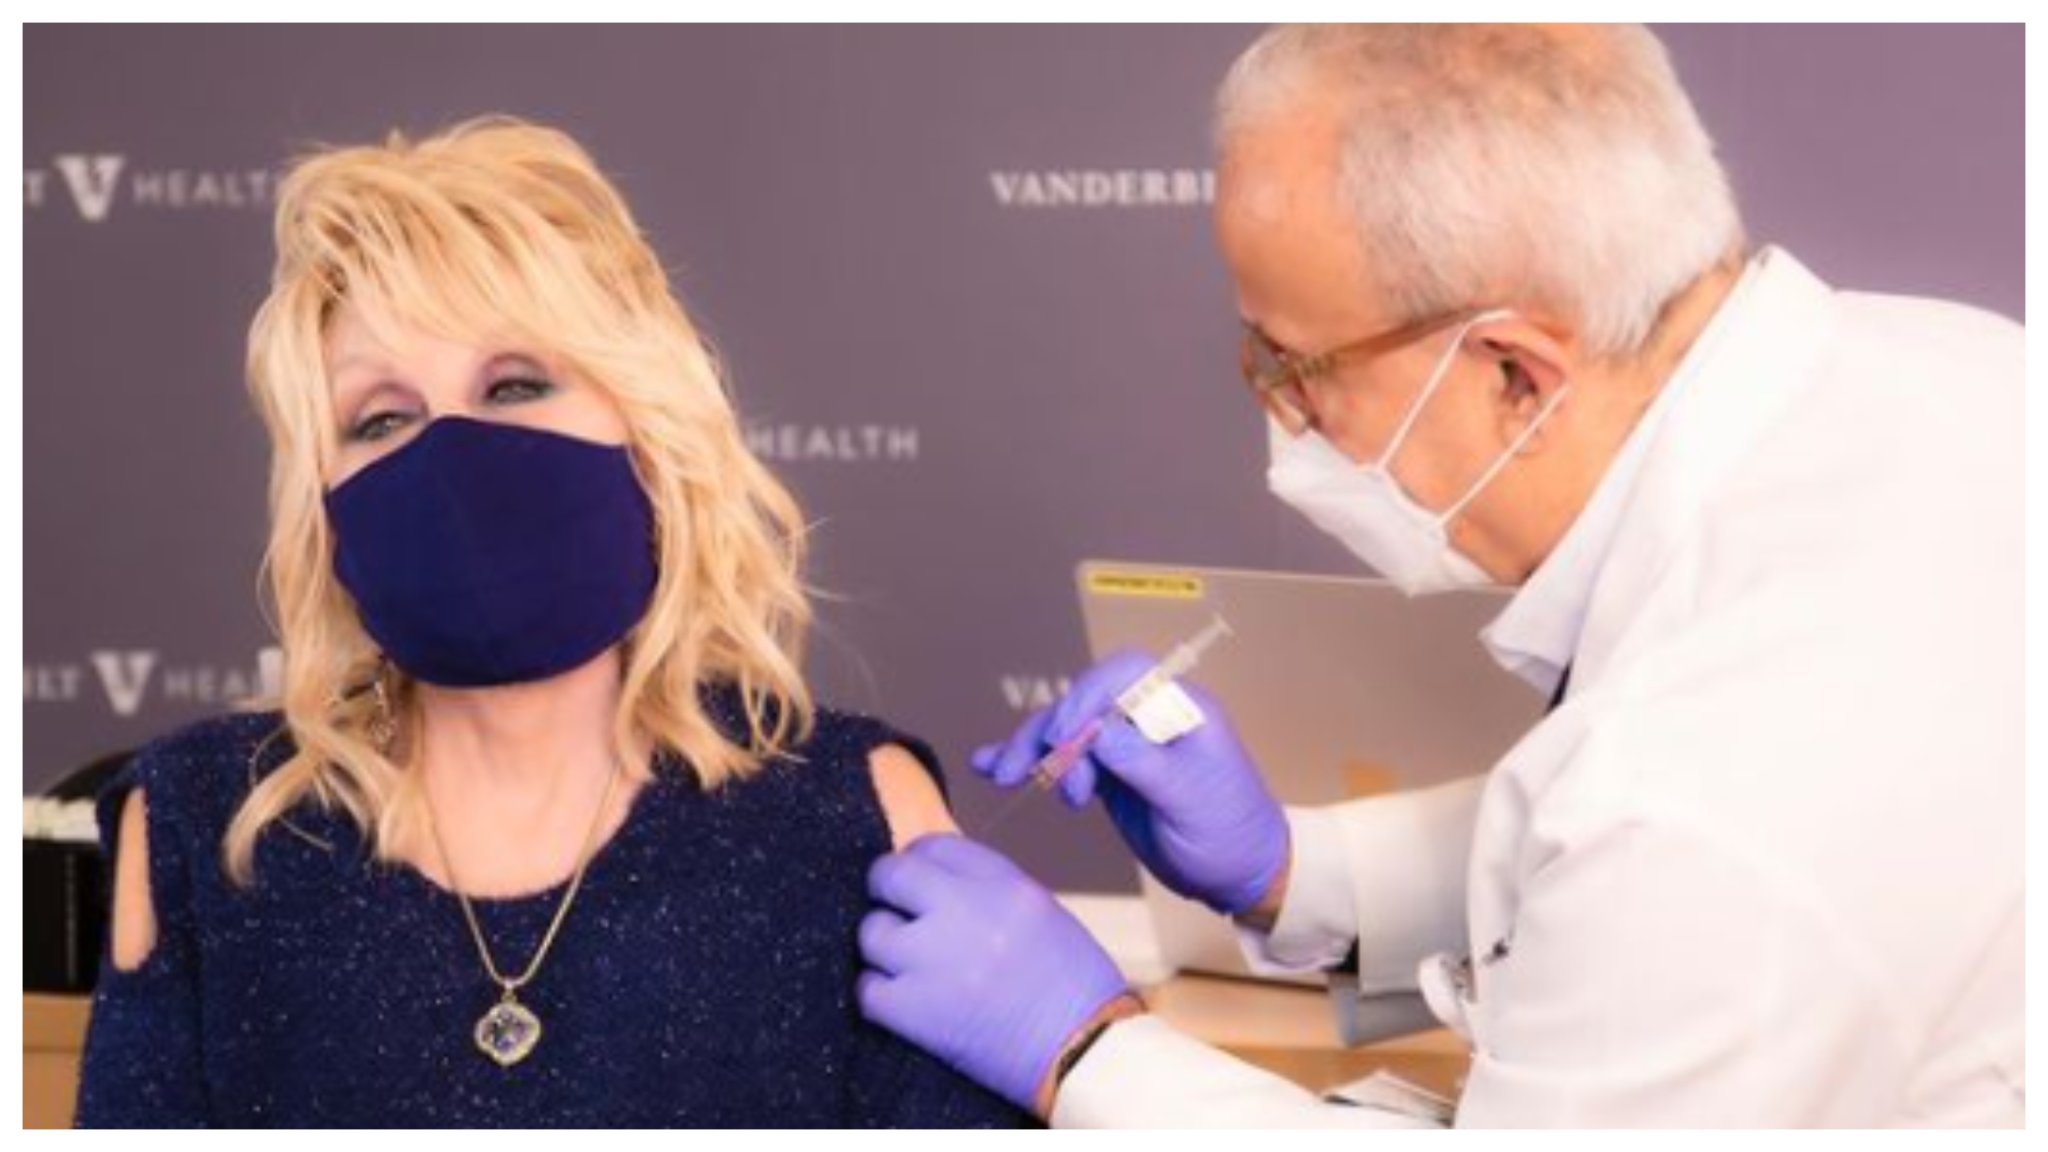 Dolly Parton Gets Vaccine She Helped Fund, Sings Clever Version Of 'Jolene' To Celebrate